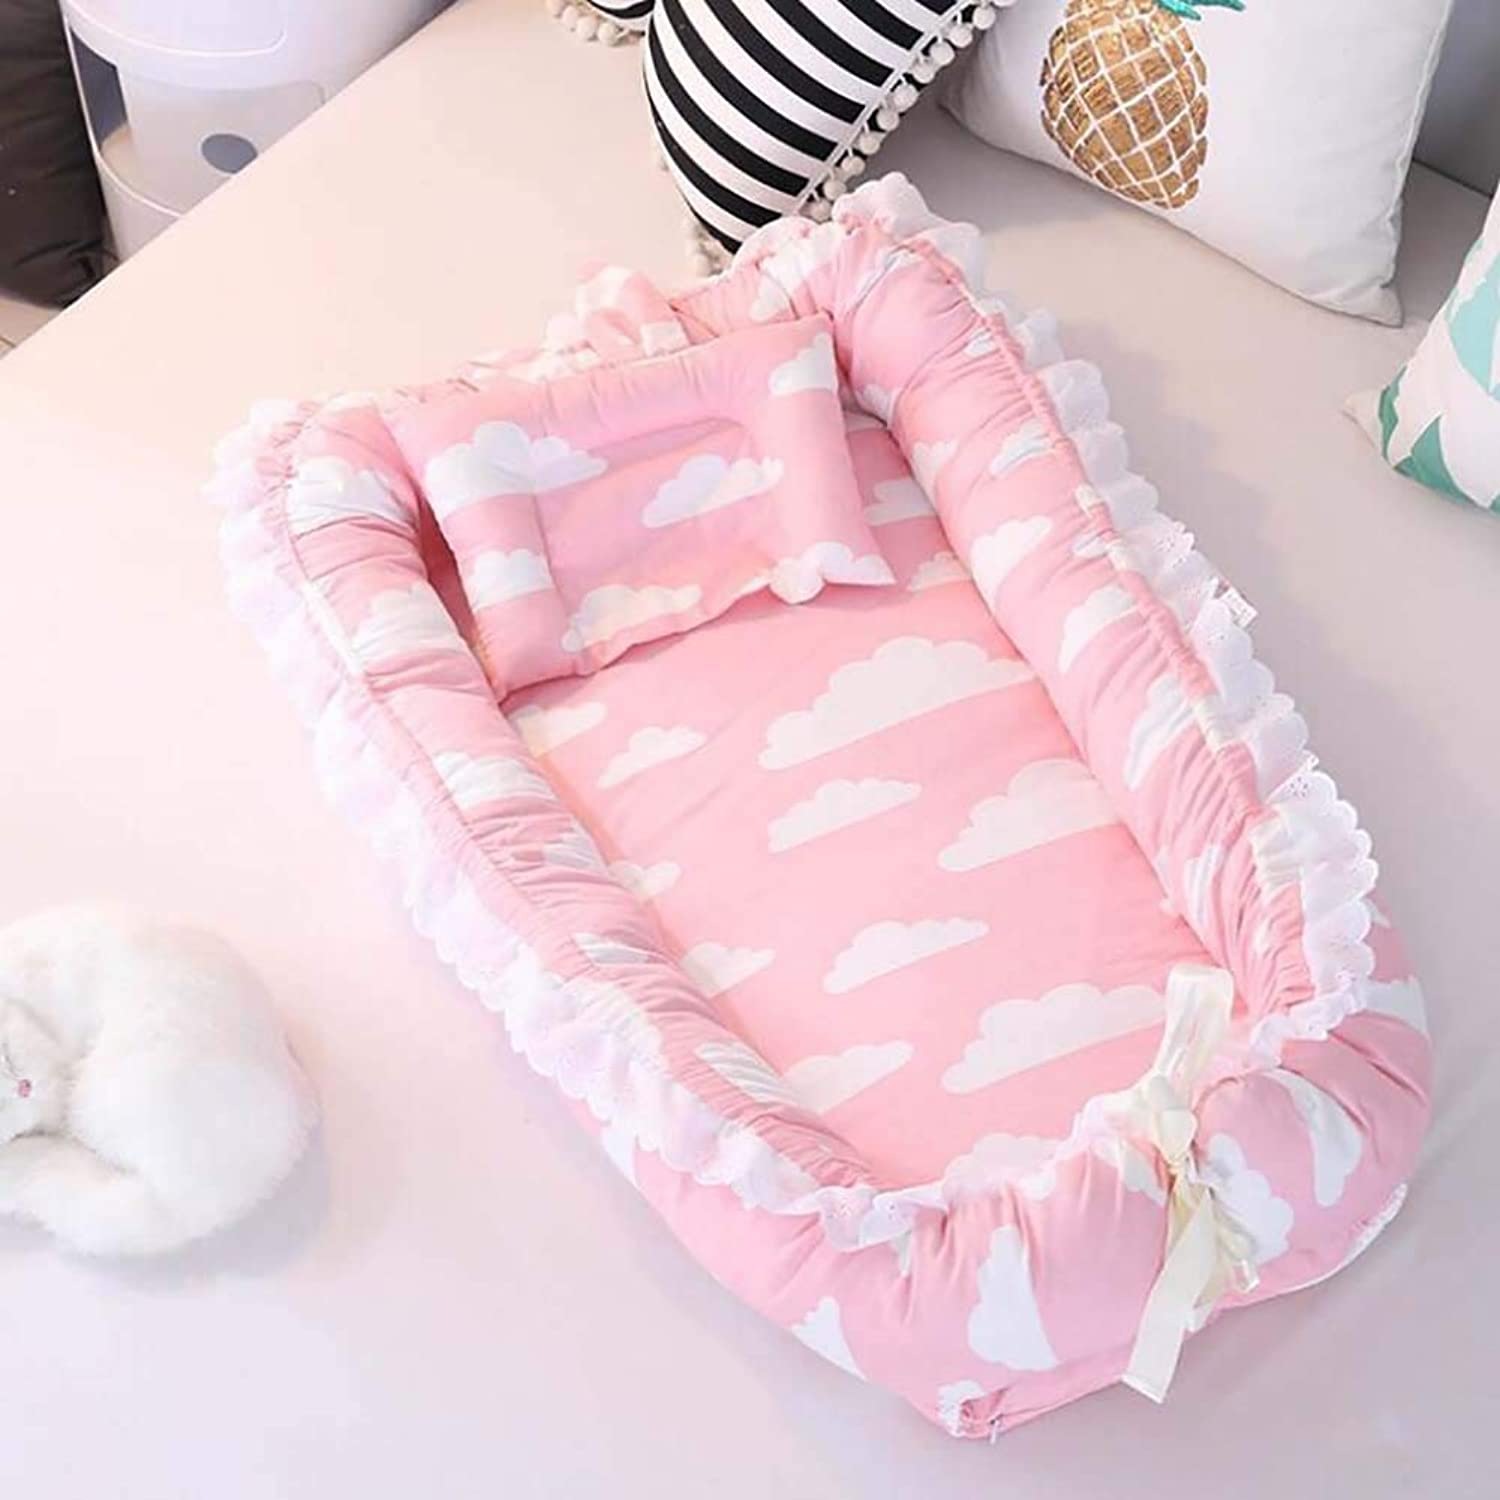 Baby Cot Removable and Washable Baby Isolation Bed Cotton Newborn Bionic Bed Removable and Washable Suitable for Baby from 0 to 24 Months,G